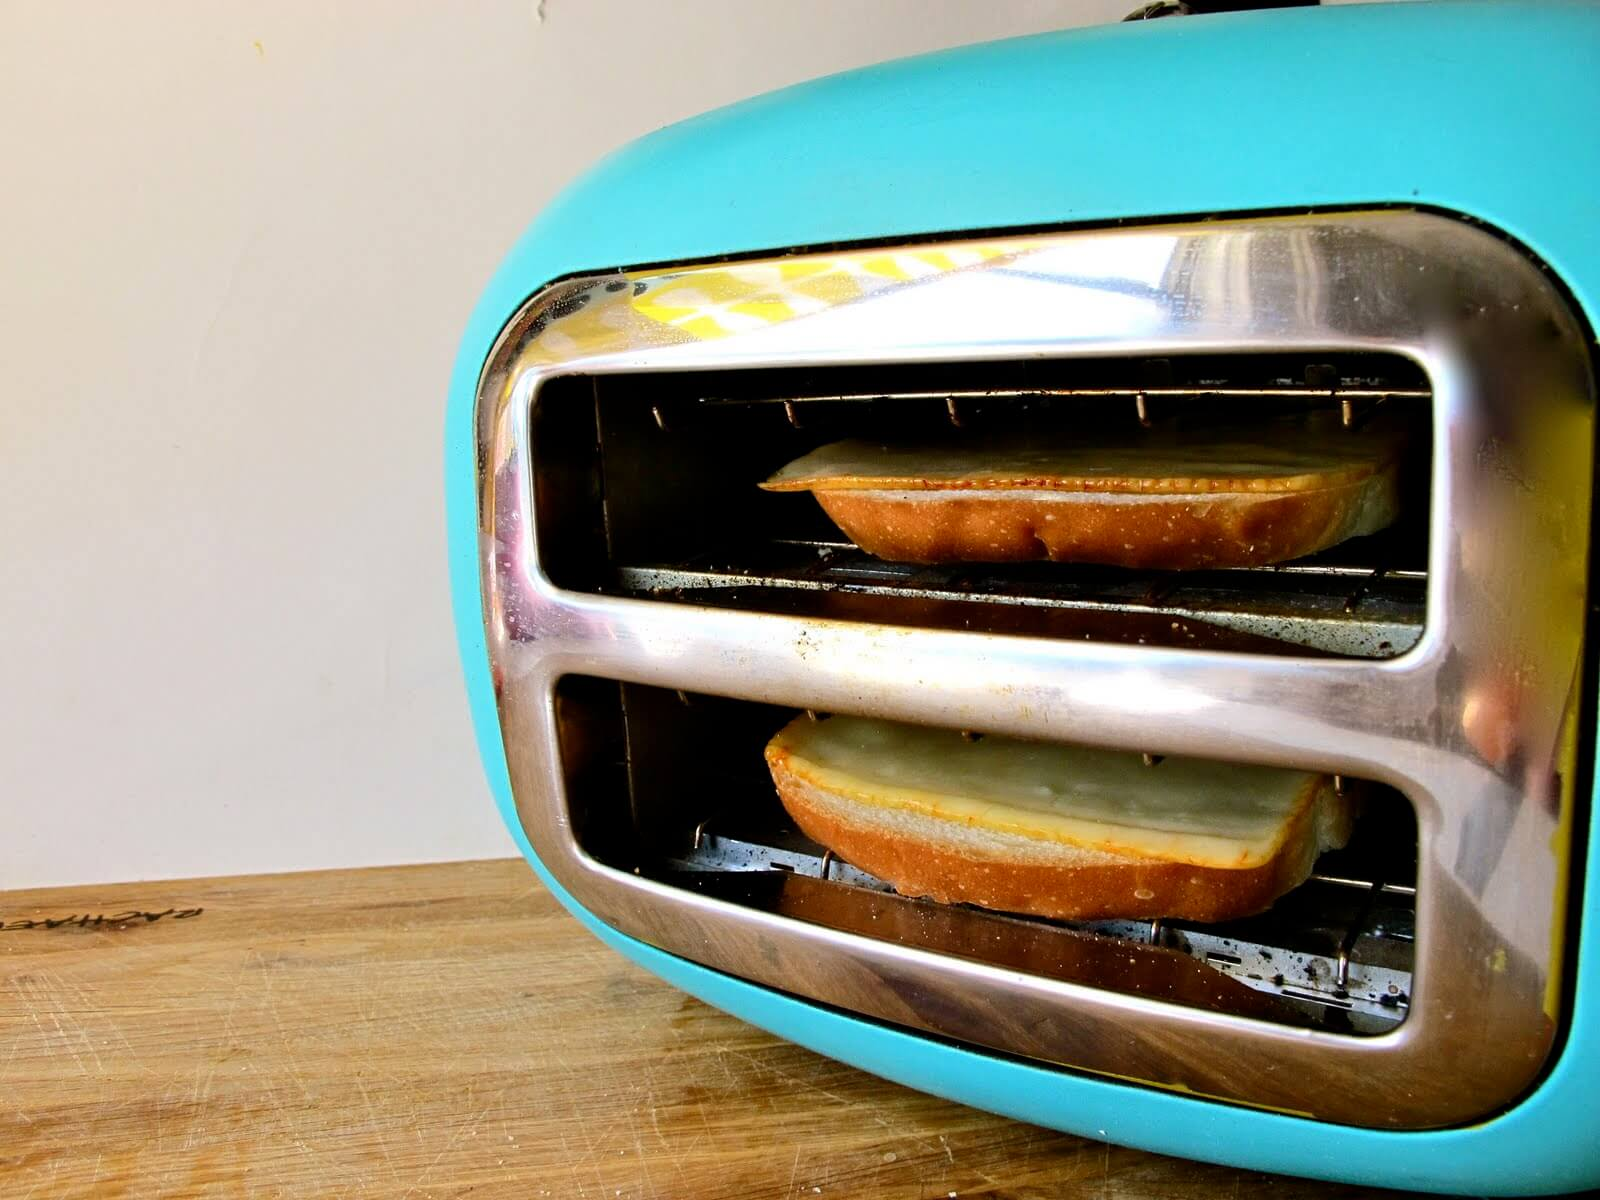 Side toaster action will just lead to heartache